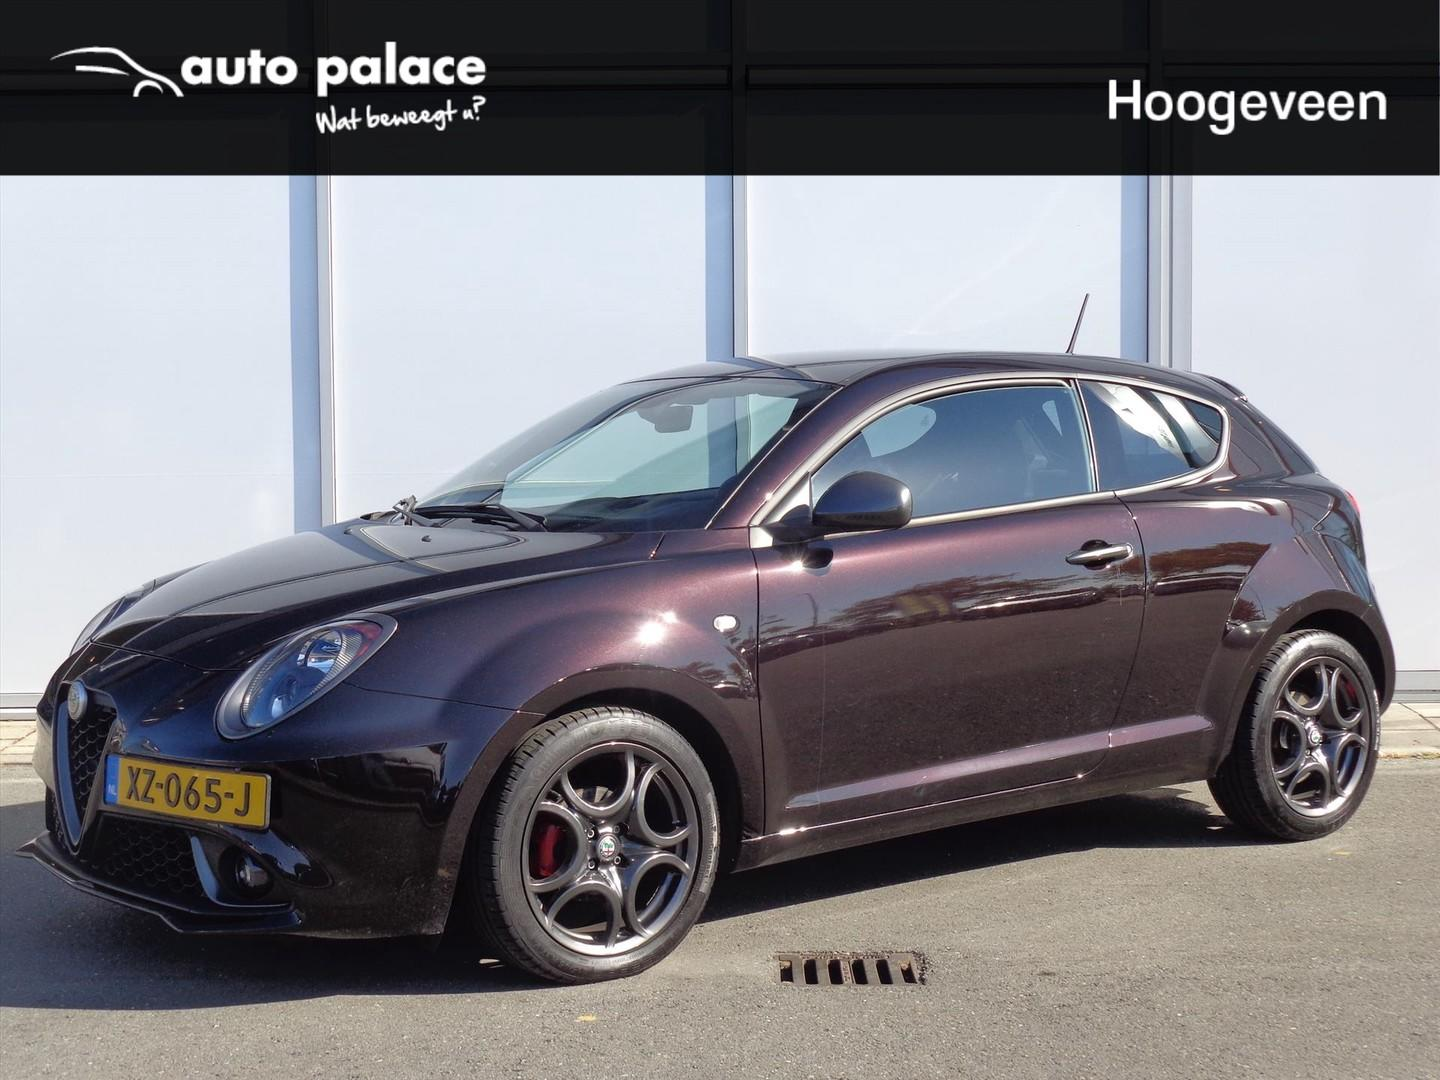 Alfa romeo Mito 0.9 turbo 100 pk super